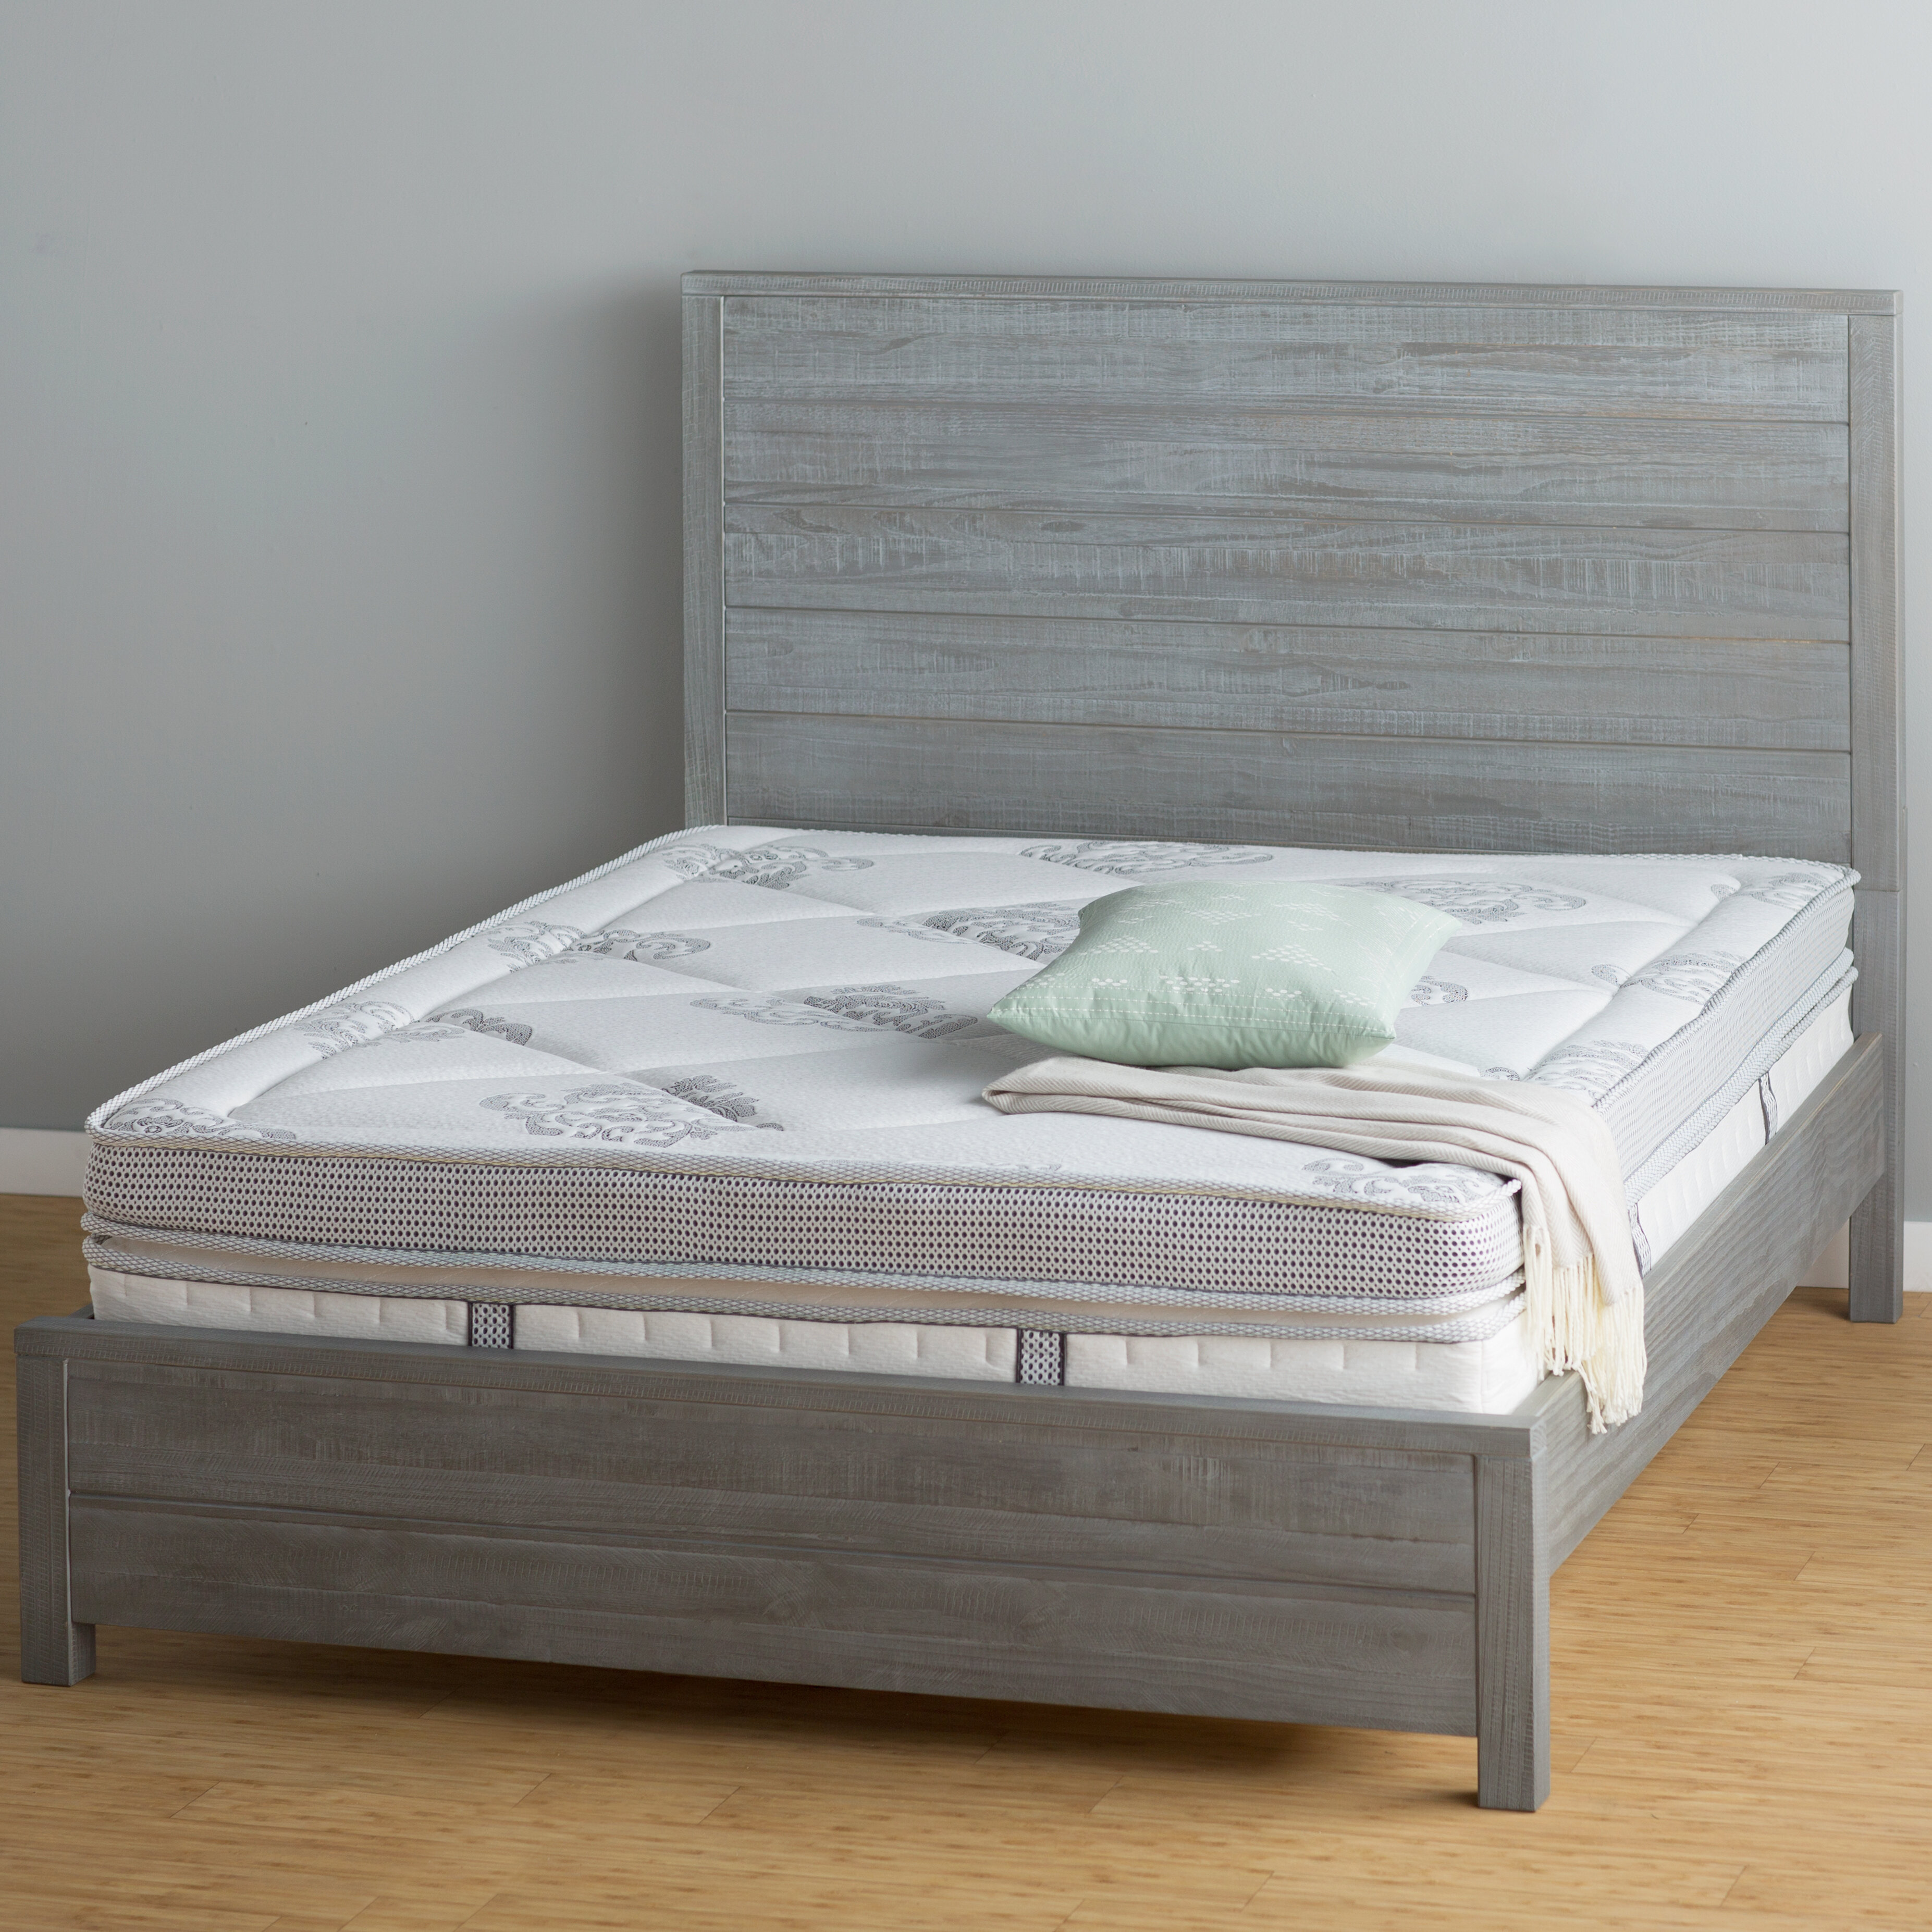 hybrid icomfort blue products number item mattress firm king fusion serta t